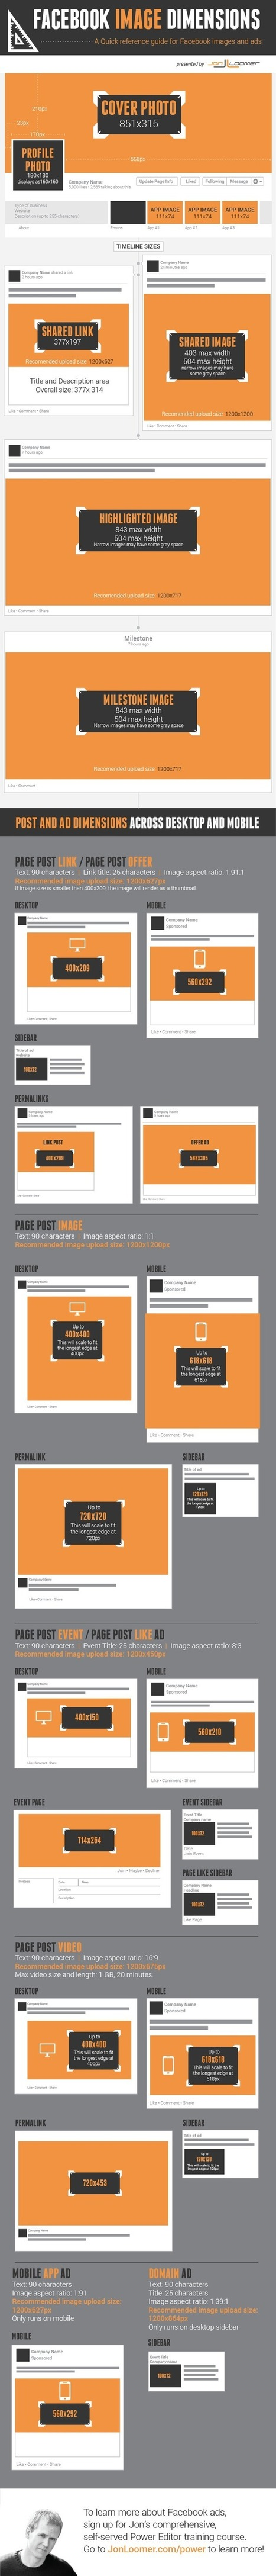 All Facebook Image Dimensions: Timeline, Posts, Ads [Infographic] | My Tools selection | Scoop.it